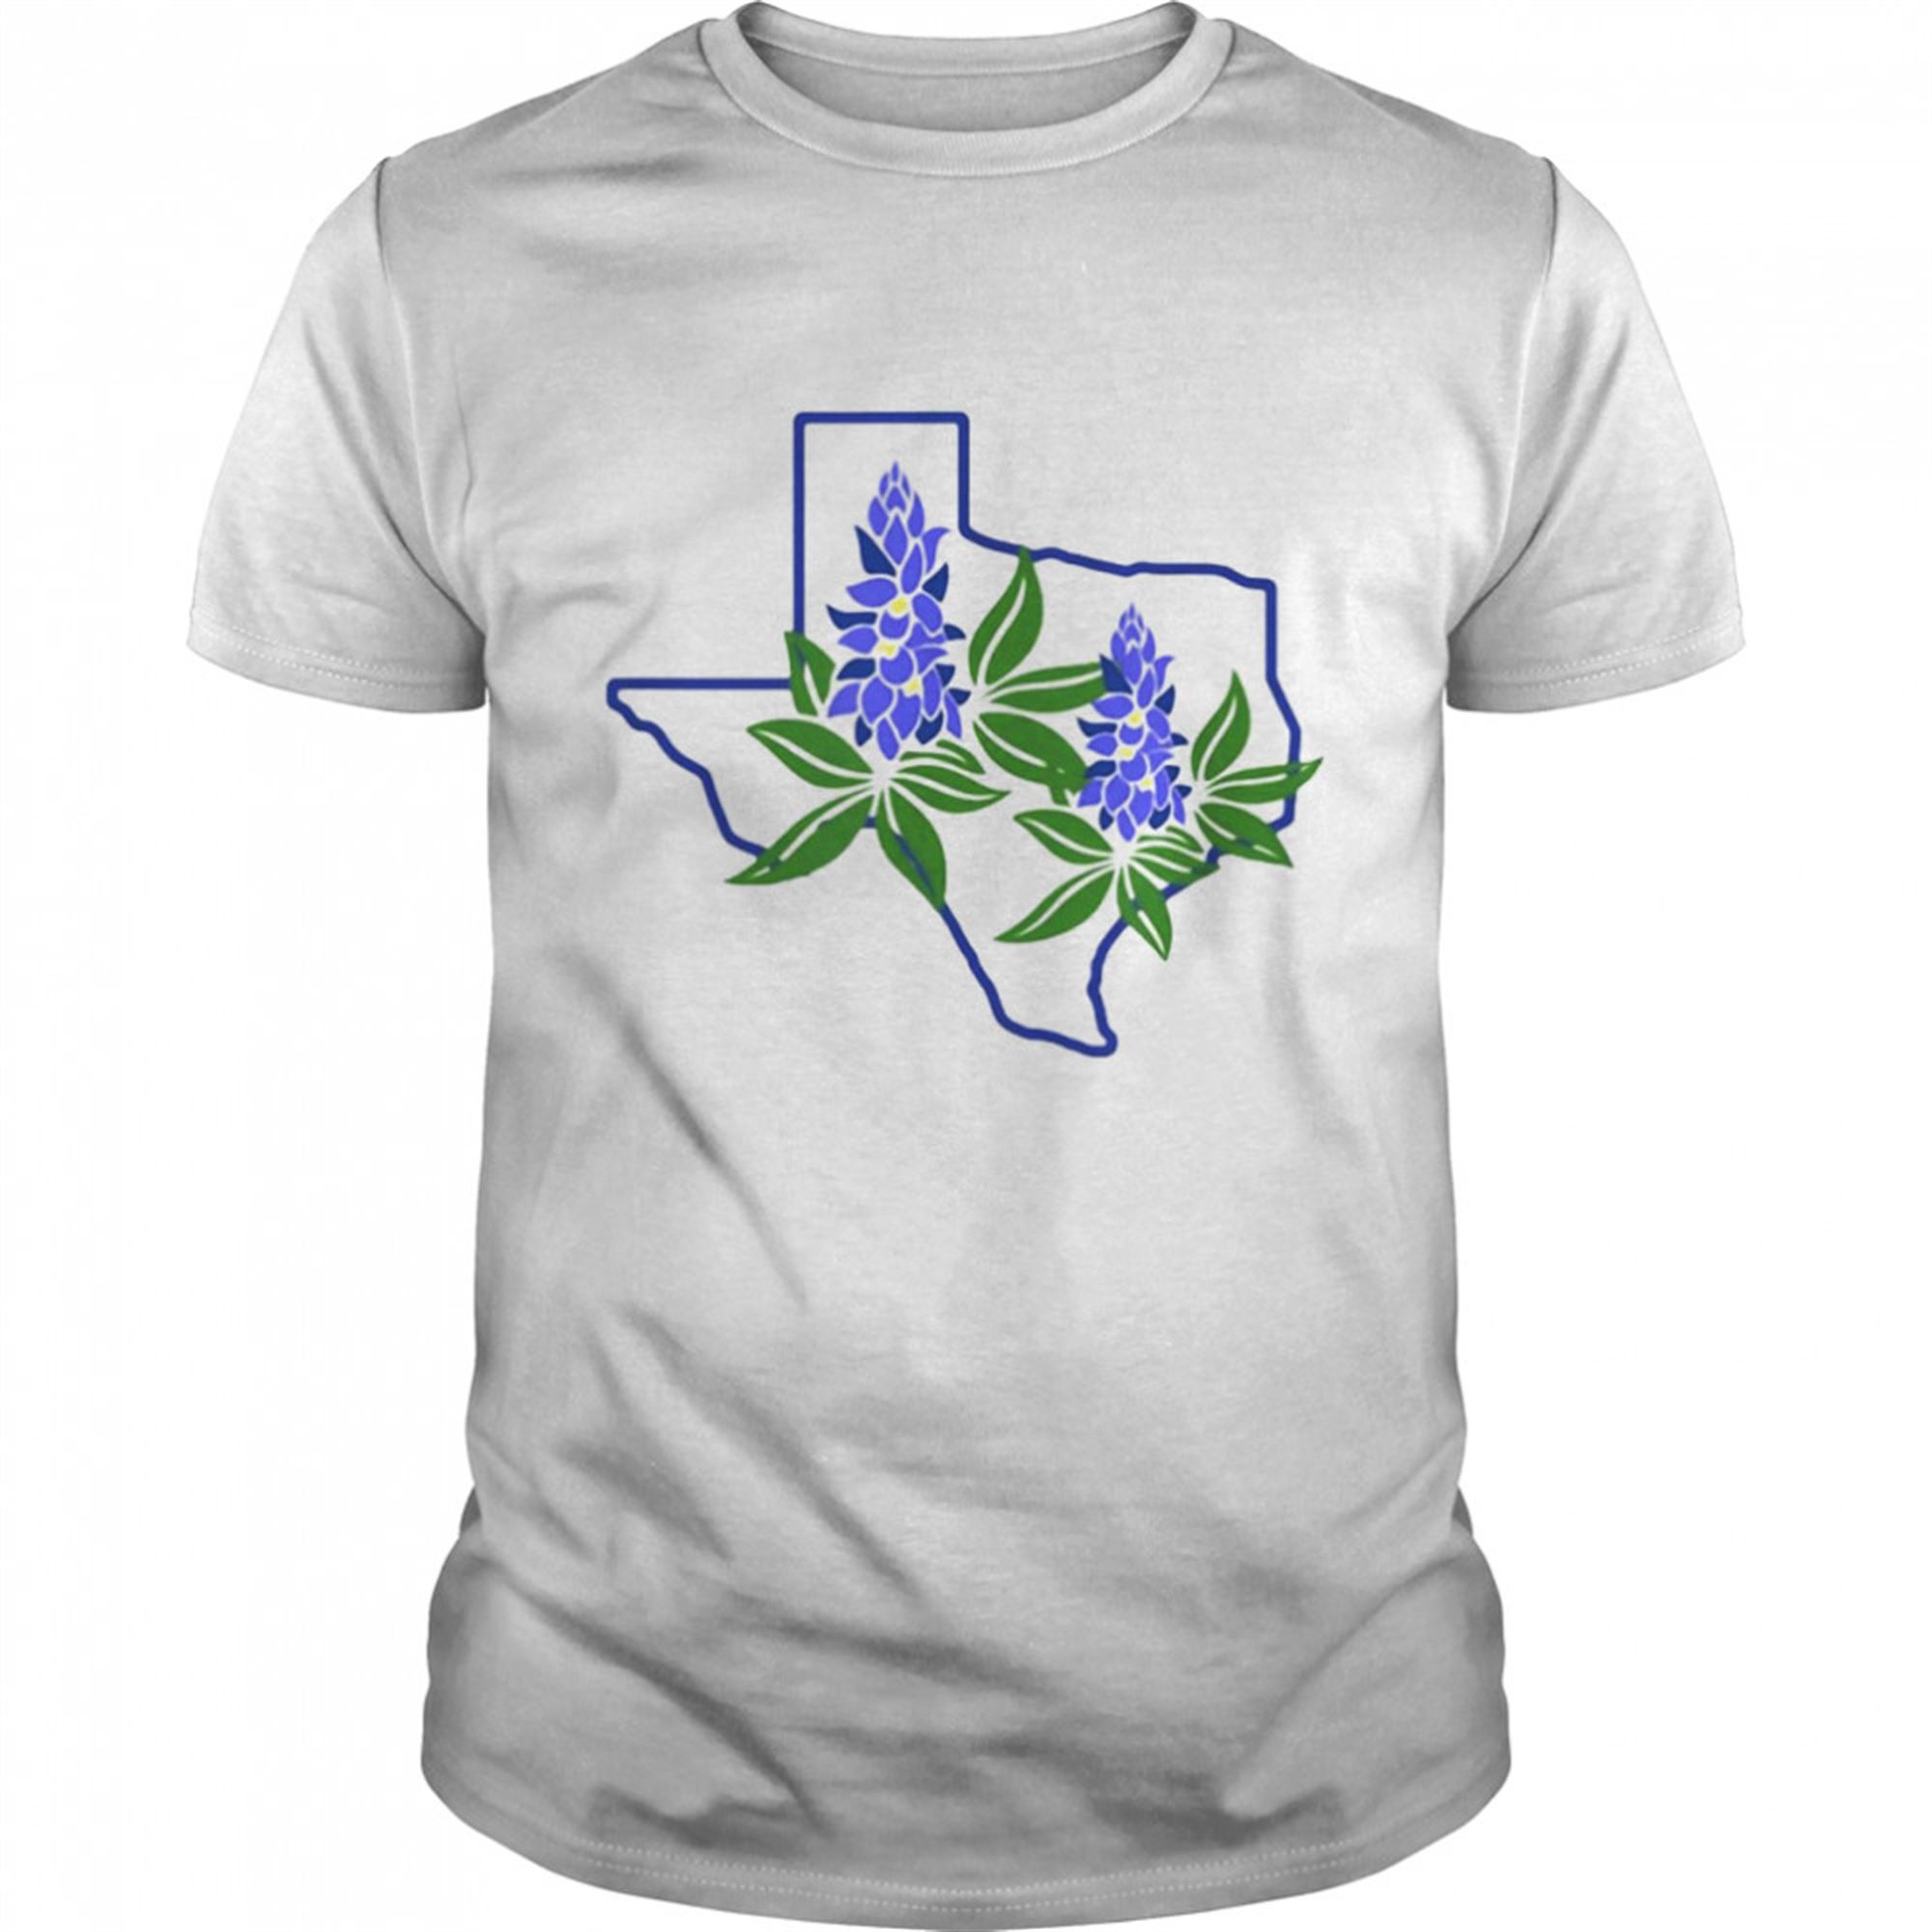 Awesome T-shirt Texas Bluebonnet Wildflowers T-shirt Hot 2021